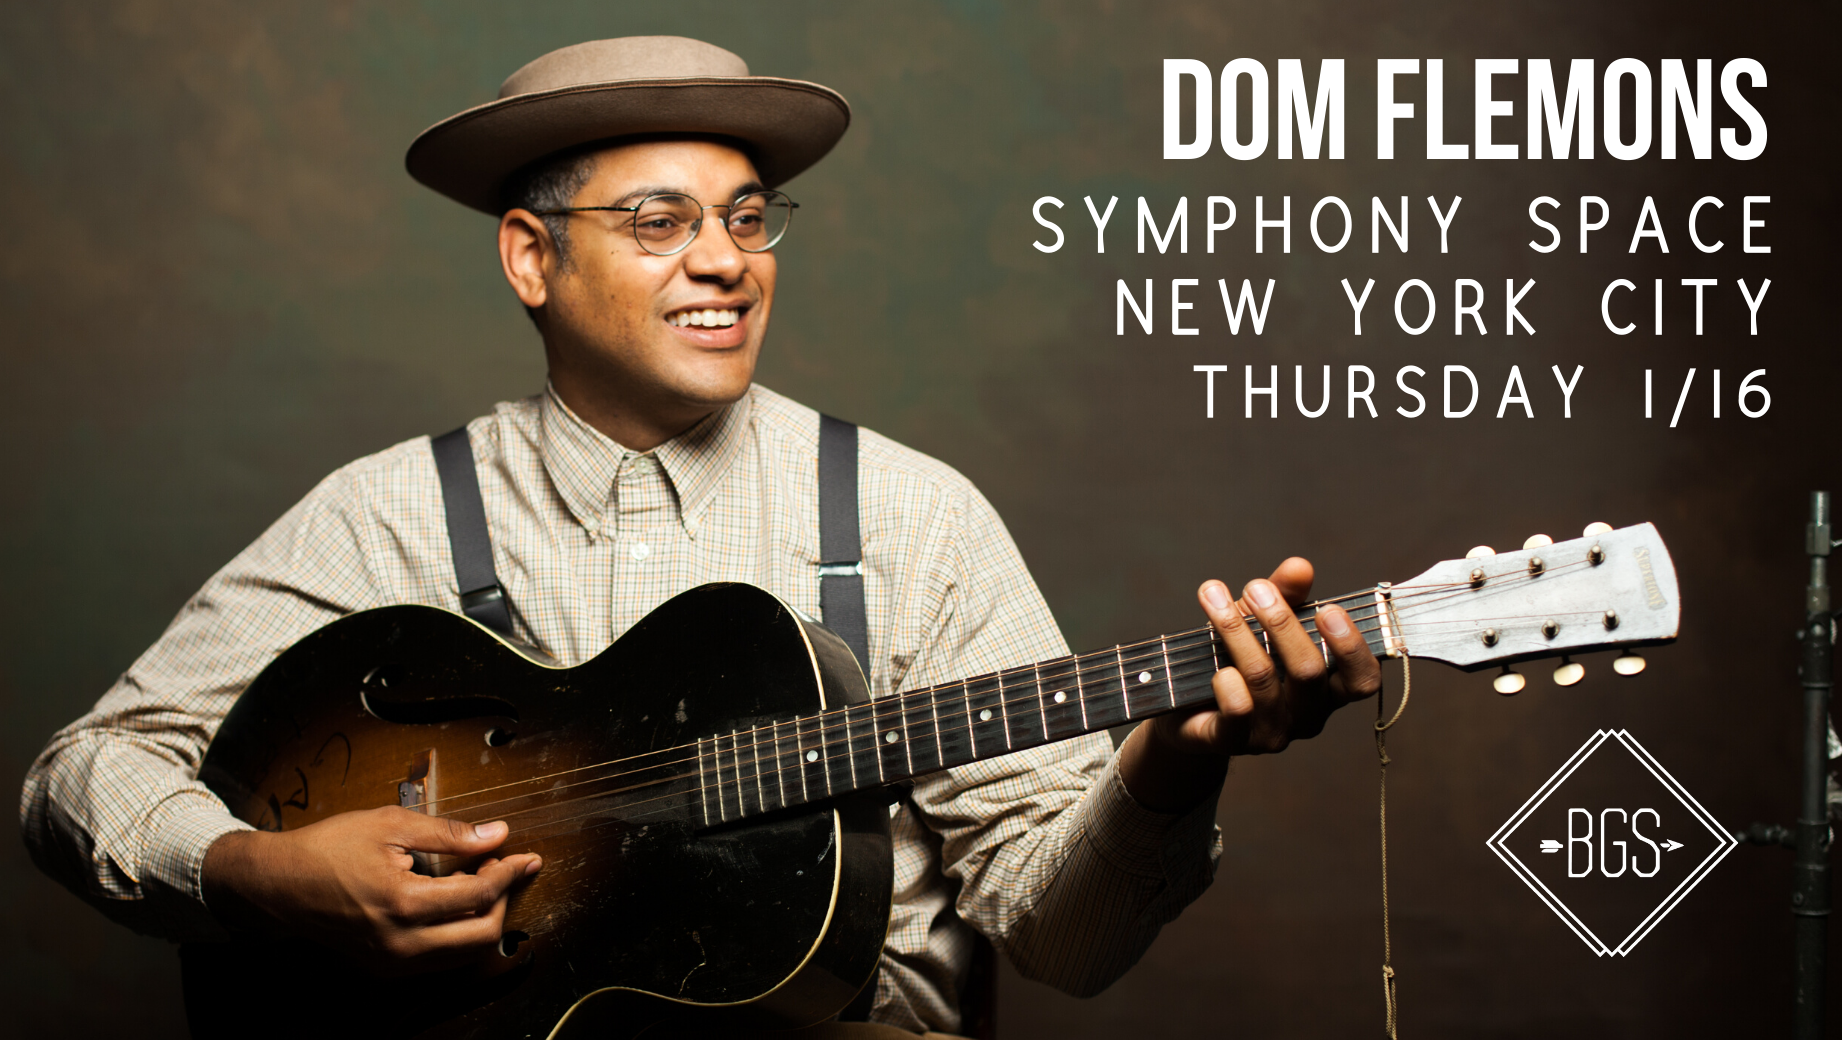 GIVEAWAY - Win Tickets to Dom Flemons @ Symphony Space (NYC) 1/16